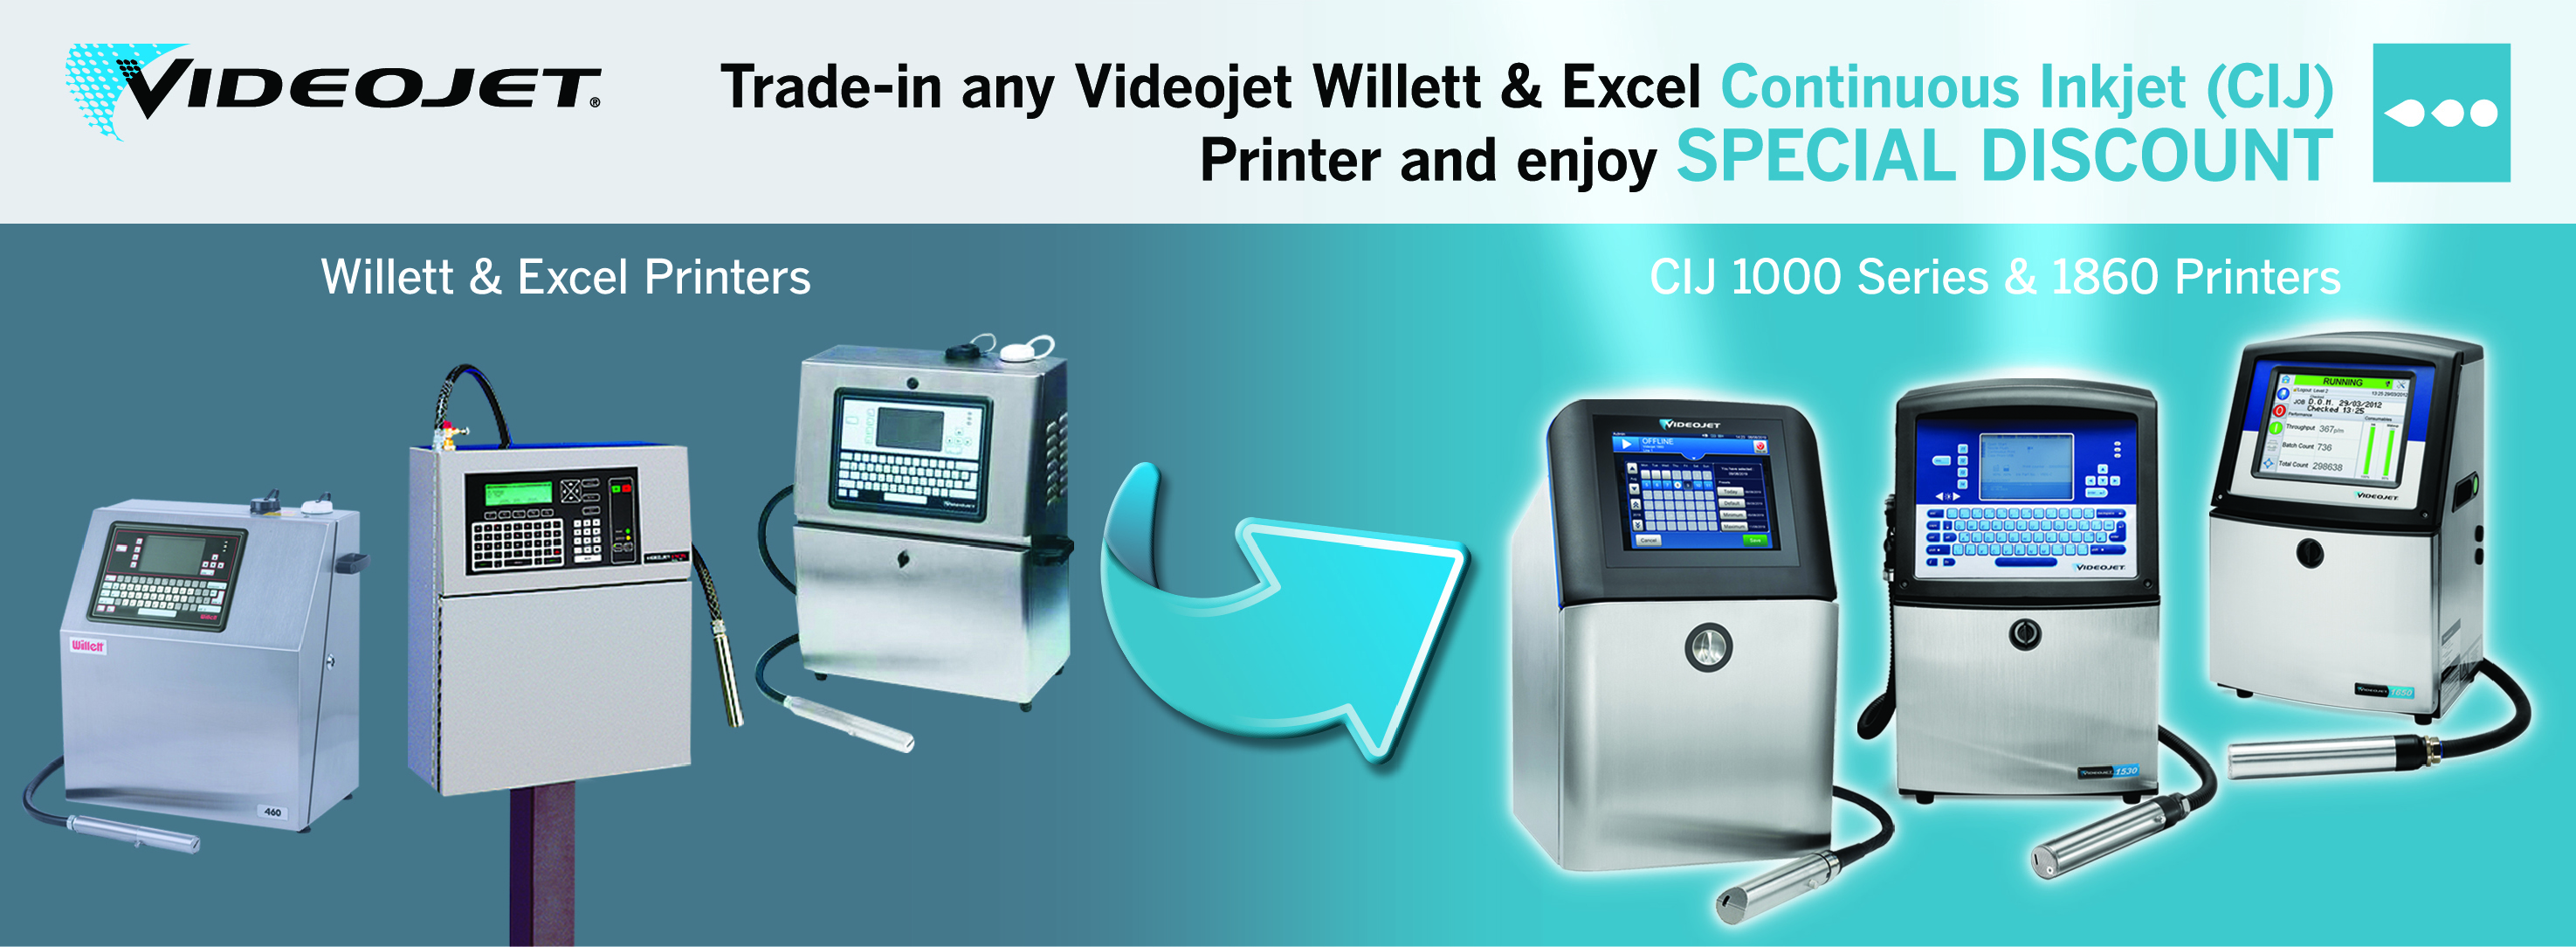 Continuous Inkjet Printer Trade-in Offer